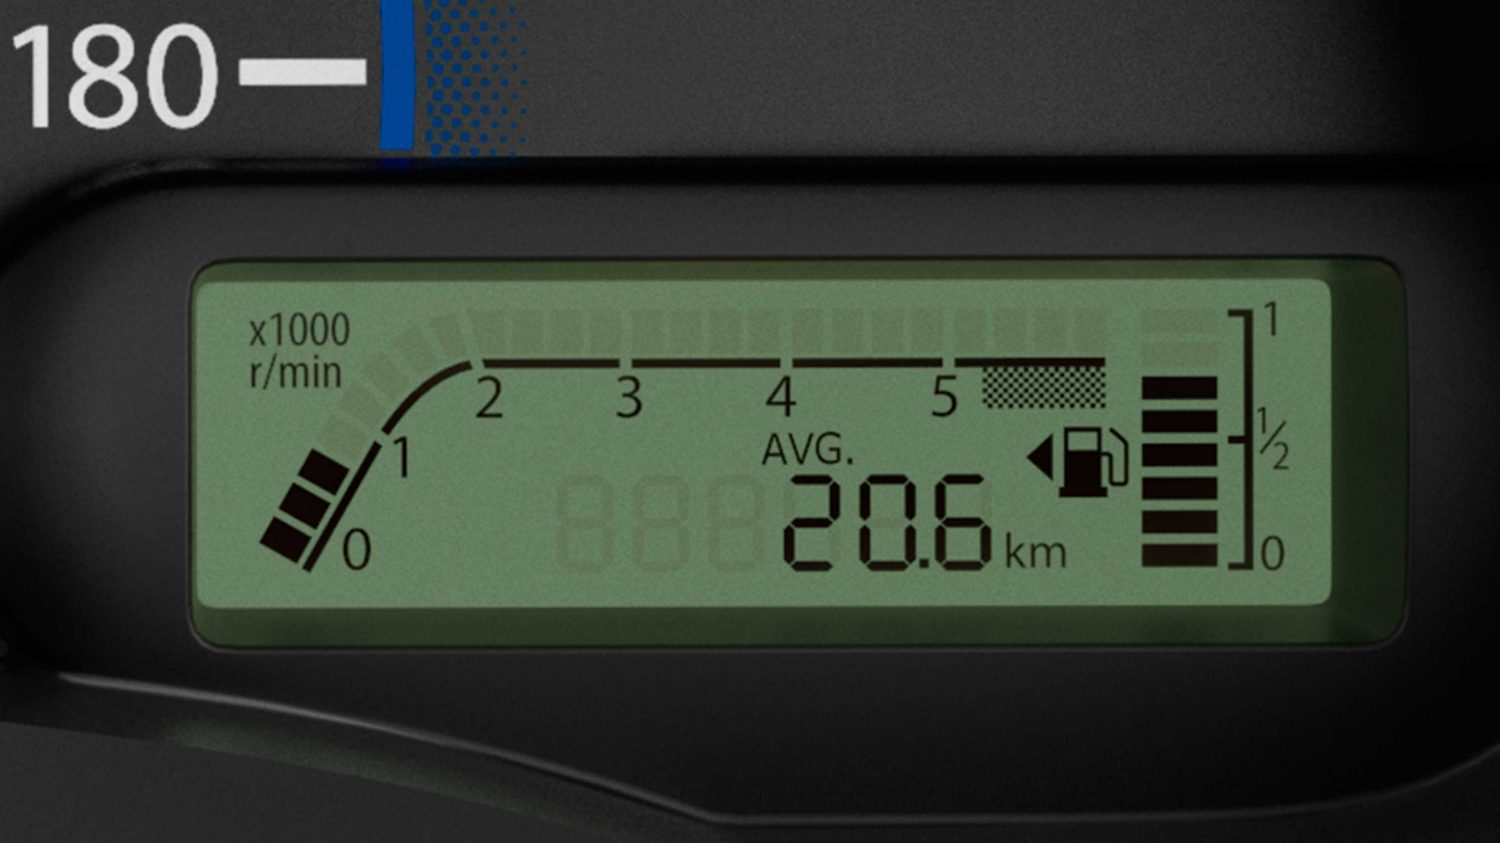 Close up on Digital Fuel meter